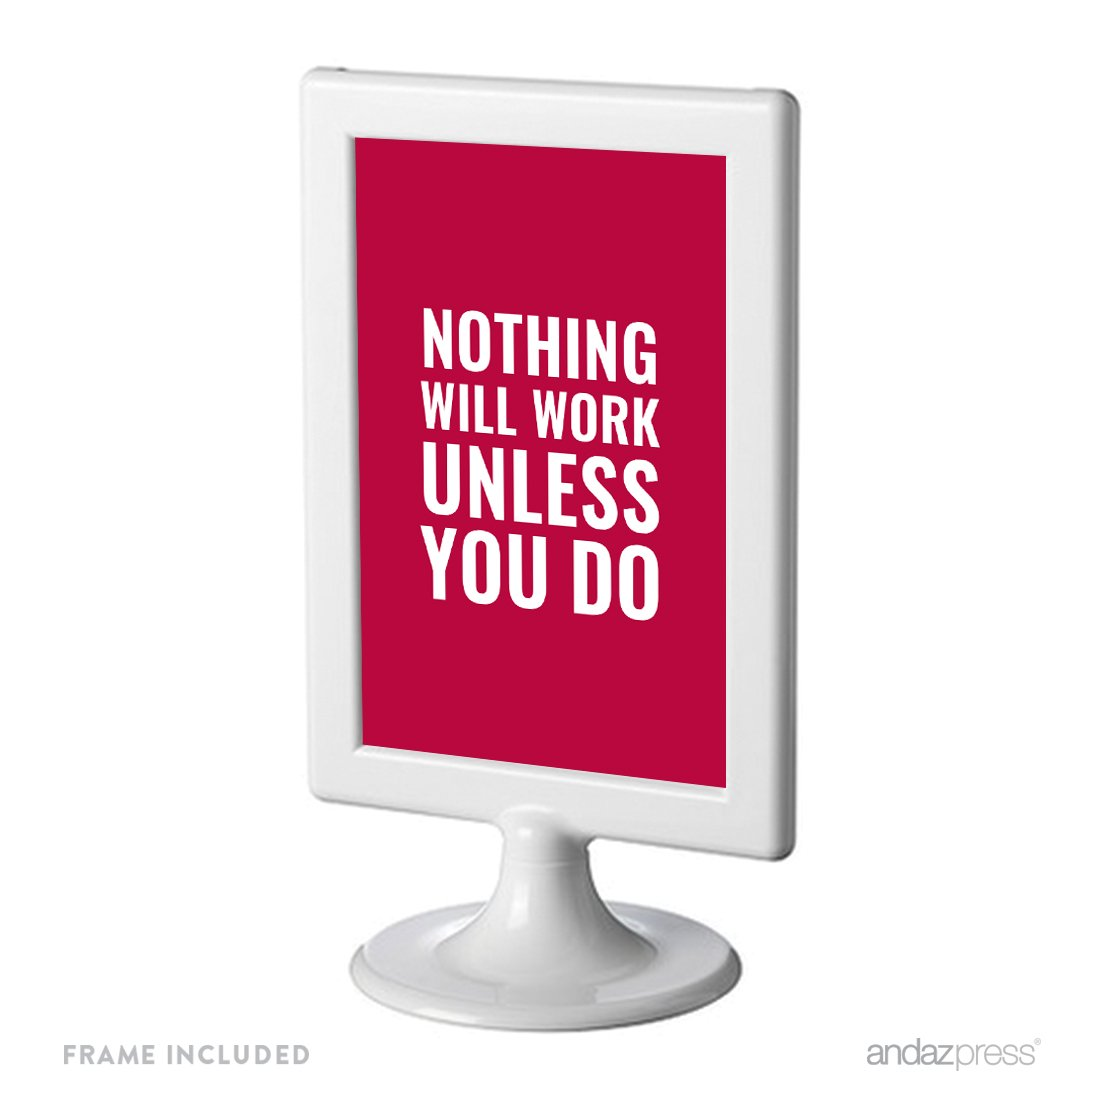 Andaz Press Office Framed Desk Art, Nothing Will Work Unless You Do, 4x6-inch Inspirational Funny Quotes Gift Print, 1-Pack, Includes Frame by Andaz Press